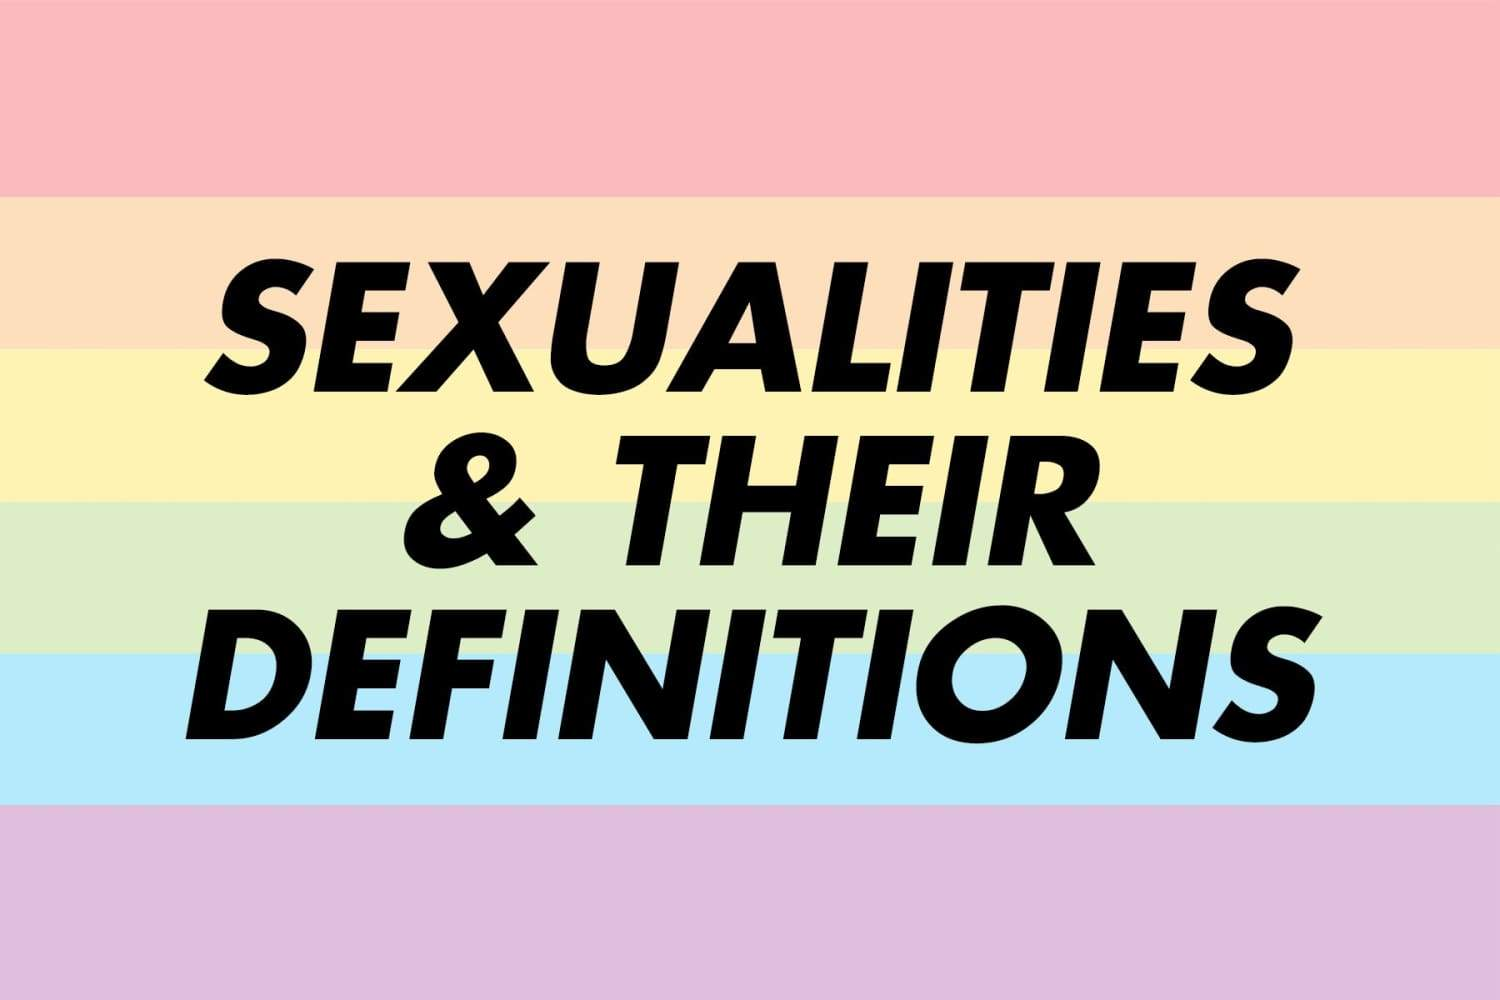 List of Sexualities and Definitions